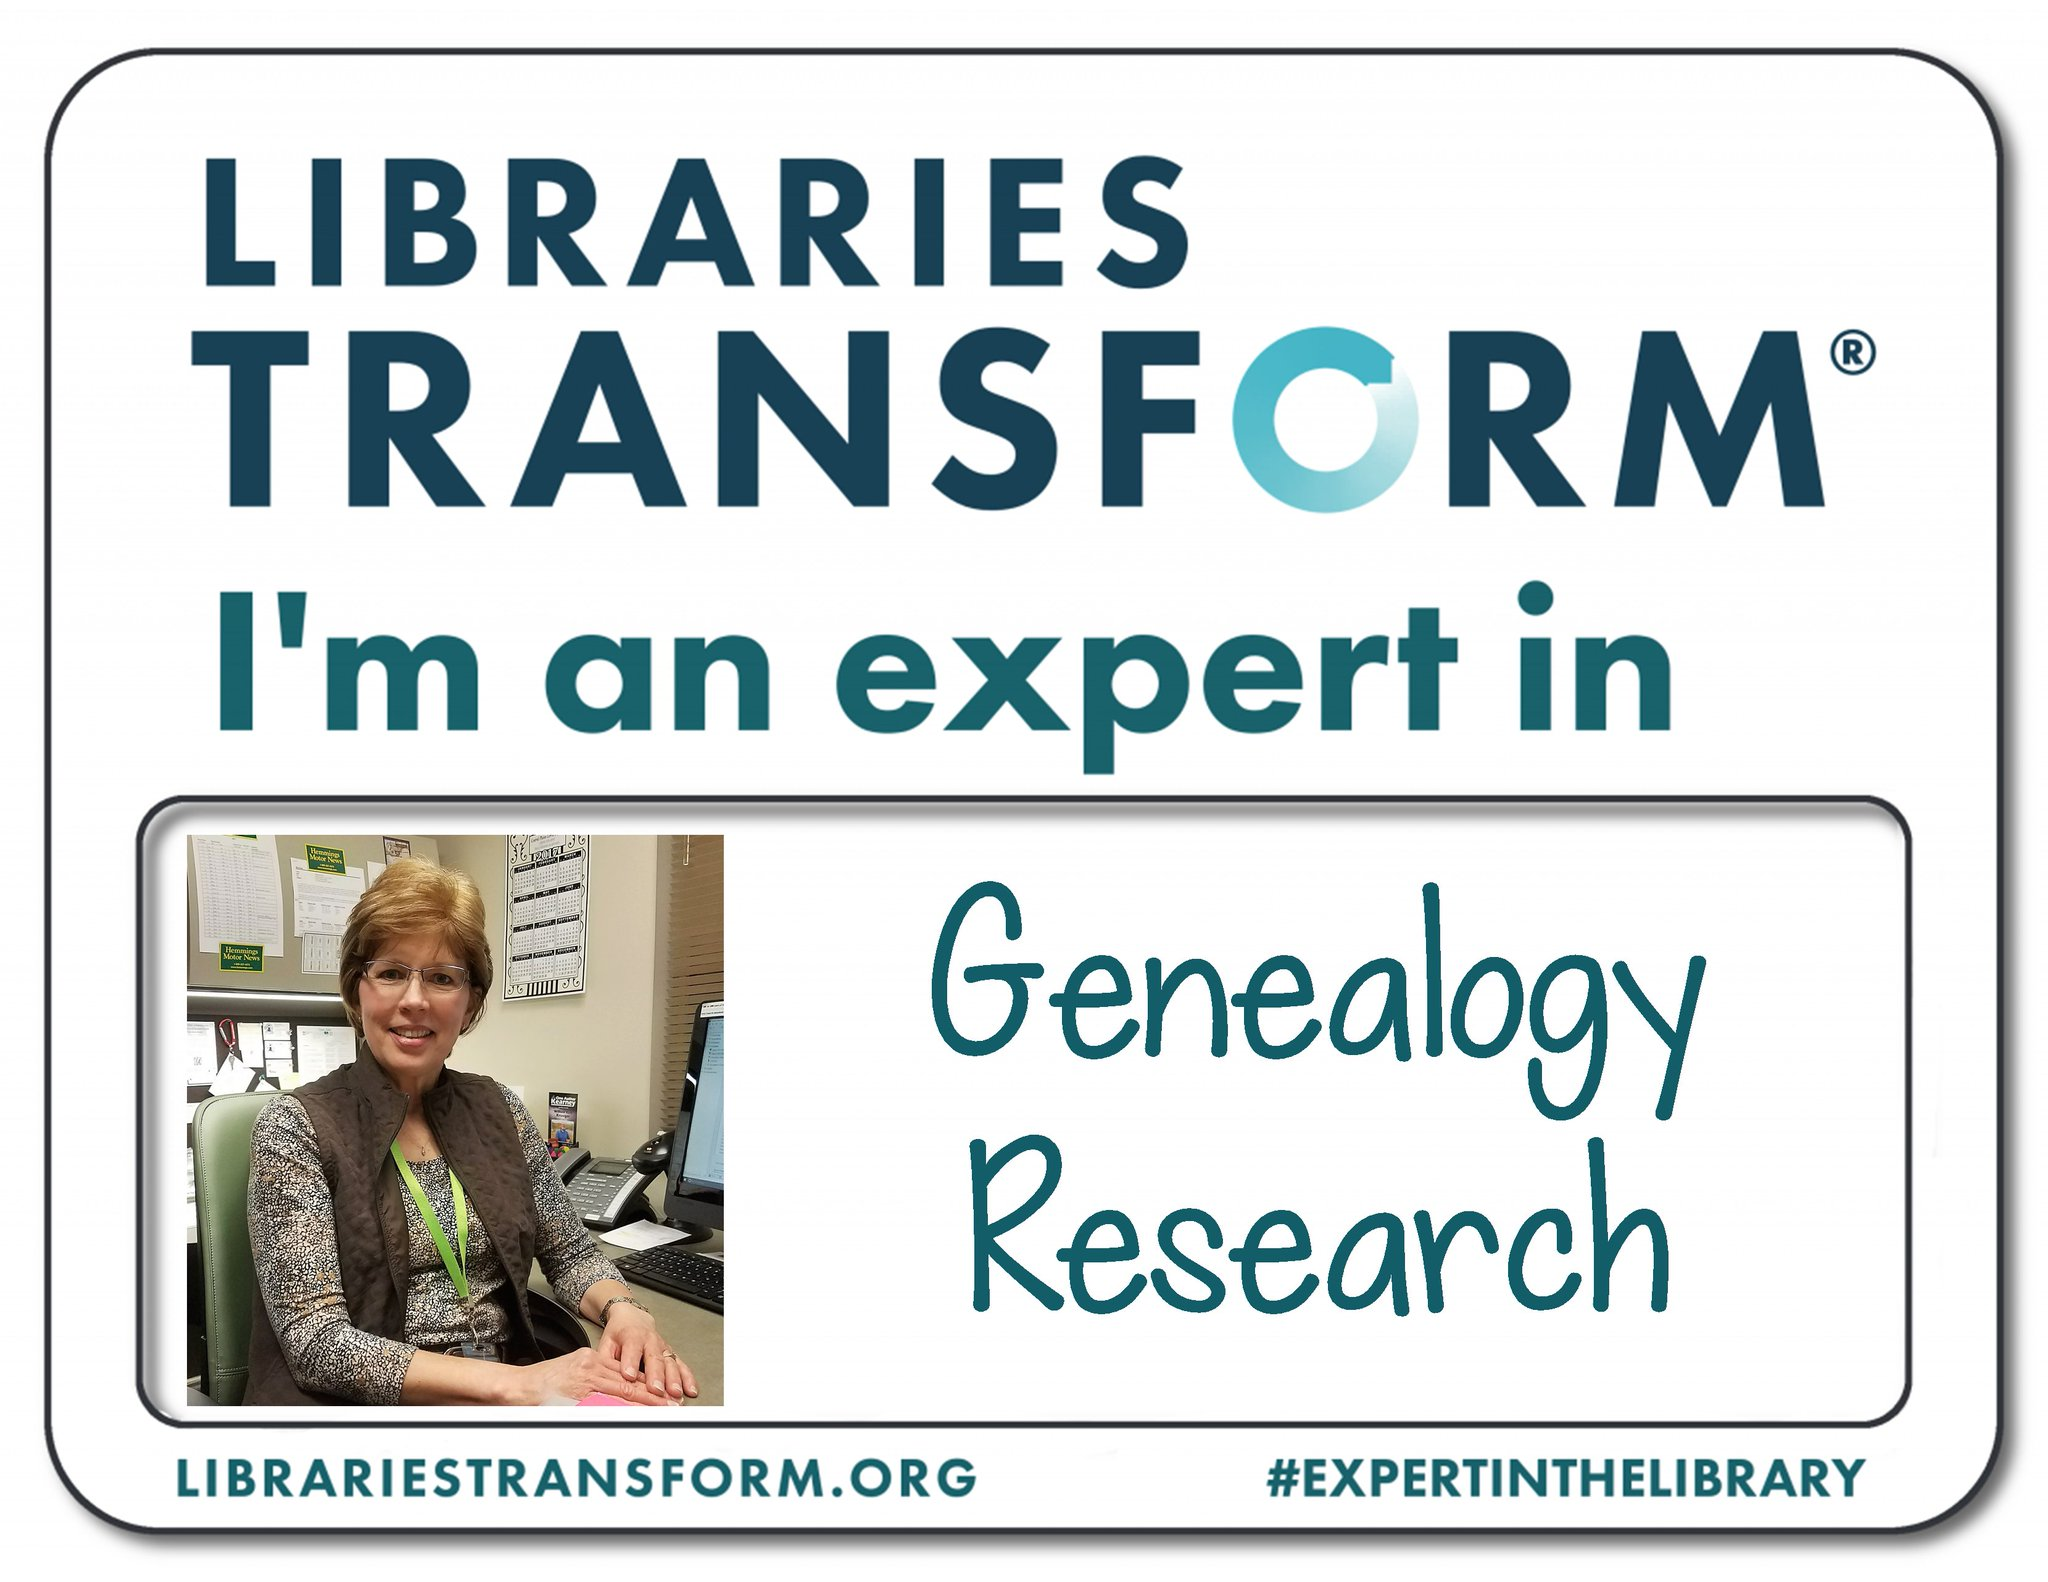 Celebrate #NationalLibraryWeek with us! Meet Rita, an #ExpertInTheLibrary at KPL. https://t.co/CQ5b3kqGh2